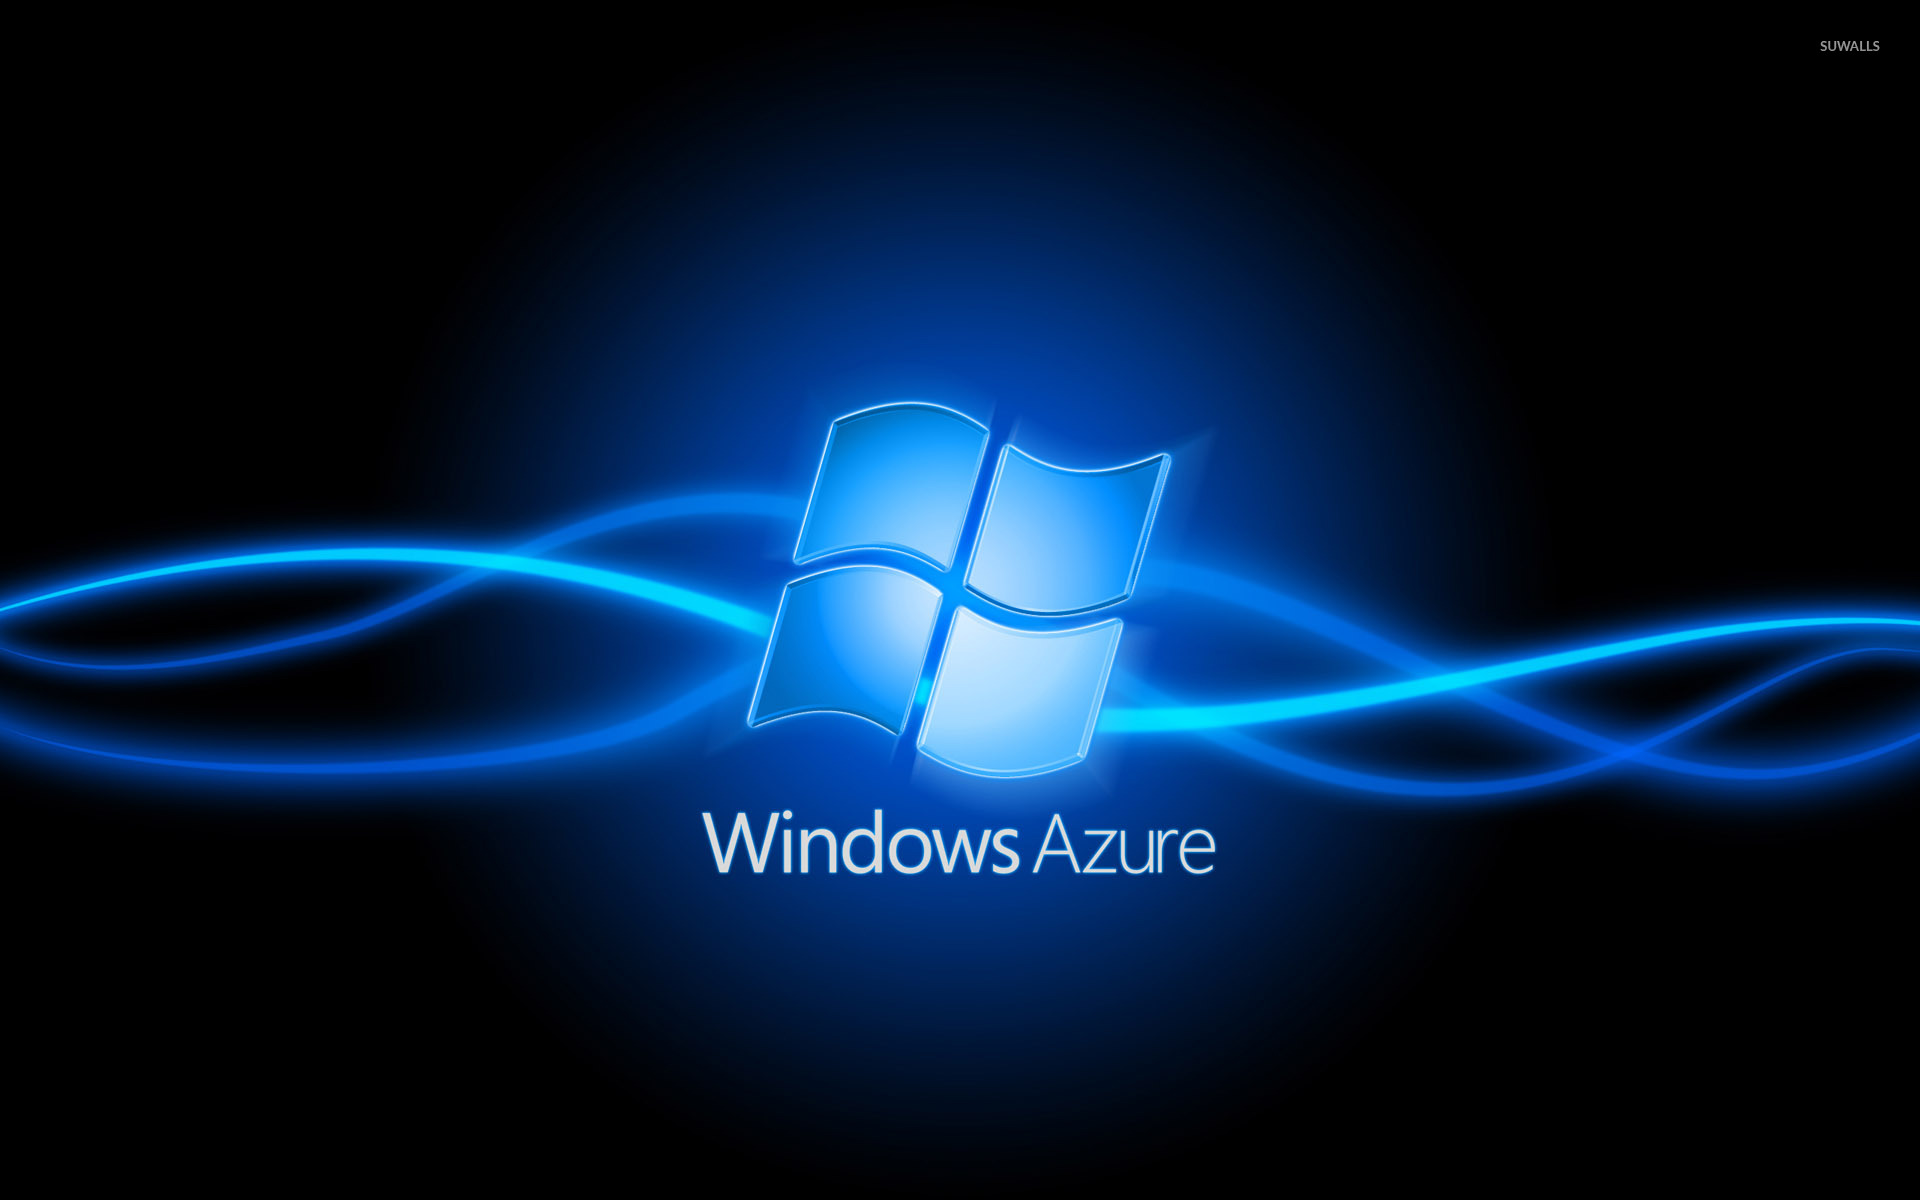 Windows Azure Wallpaper